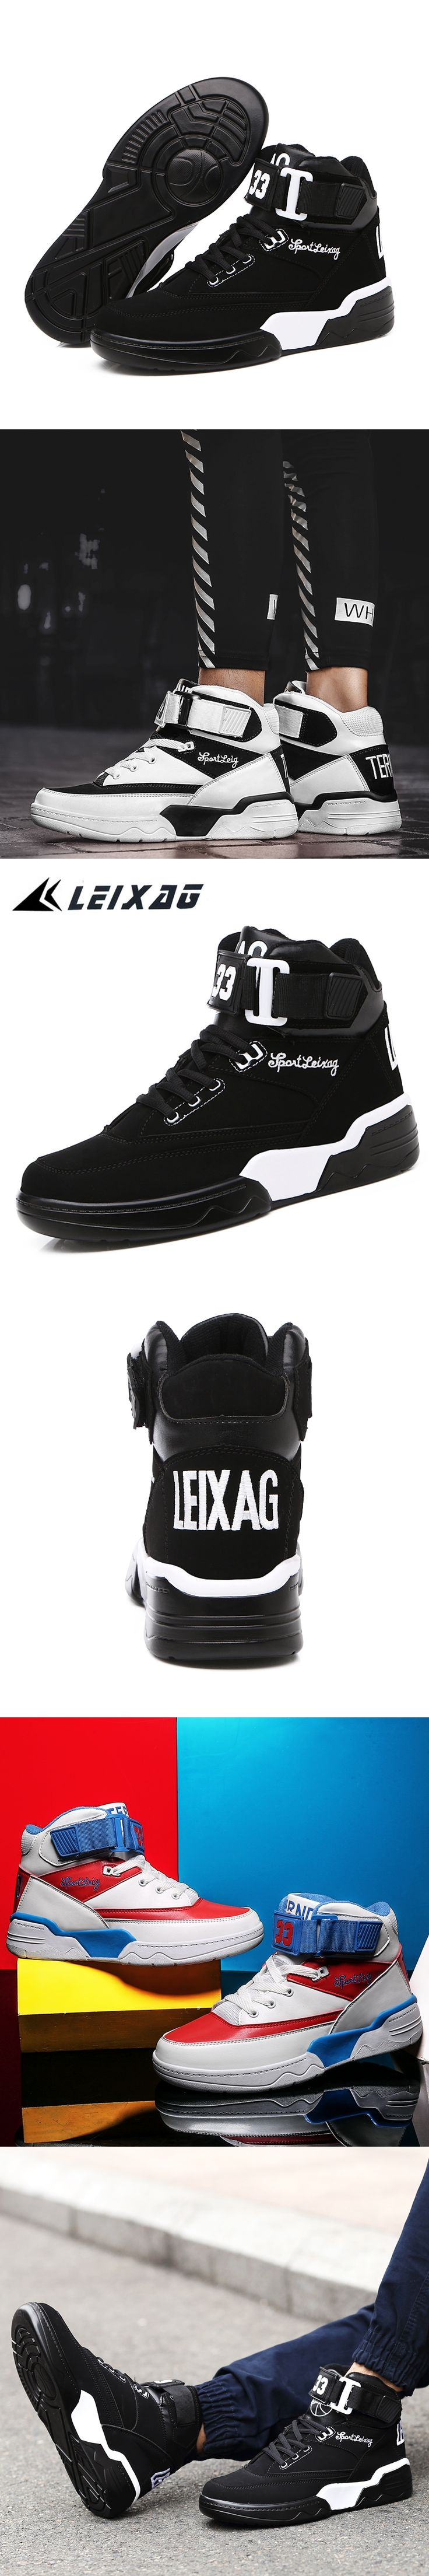 LEIXAG Men's Basketball Shoes Damping Men Sports Shoes High Top Breathable Trainers Leather Sneakers Outdoor Jordan Shoes 36-48